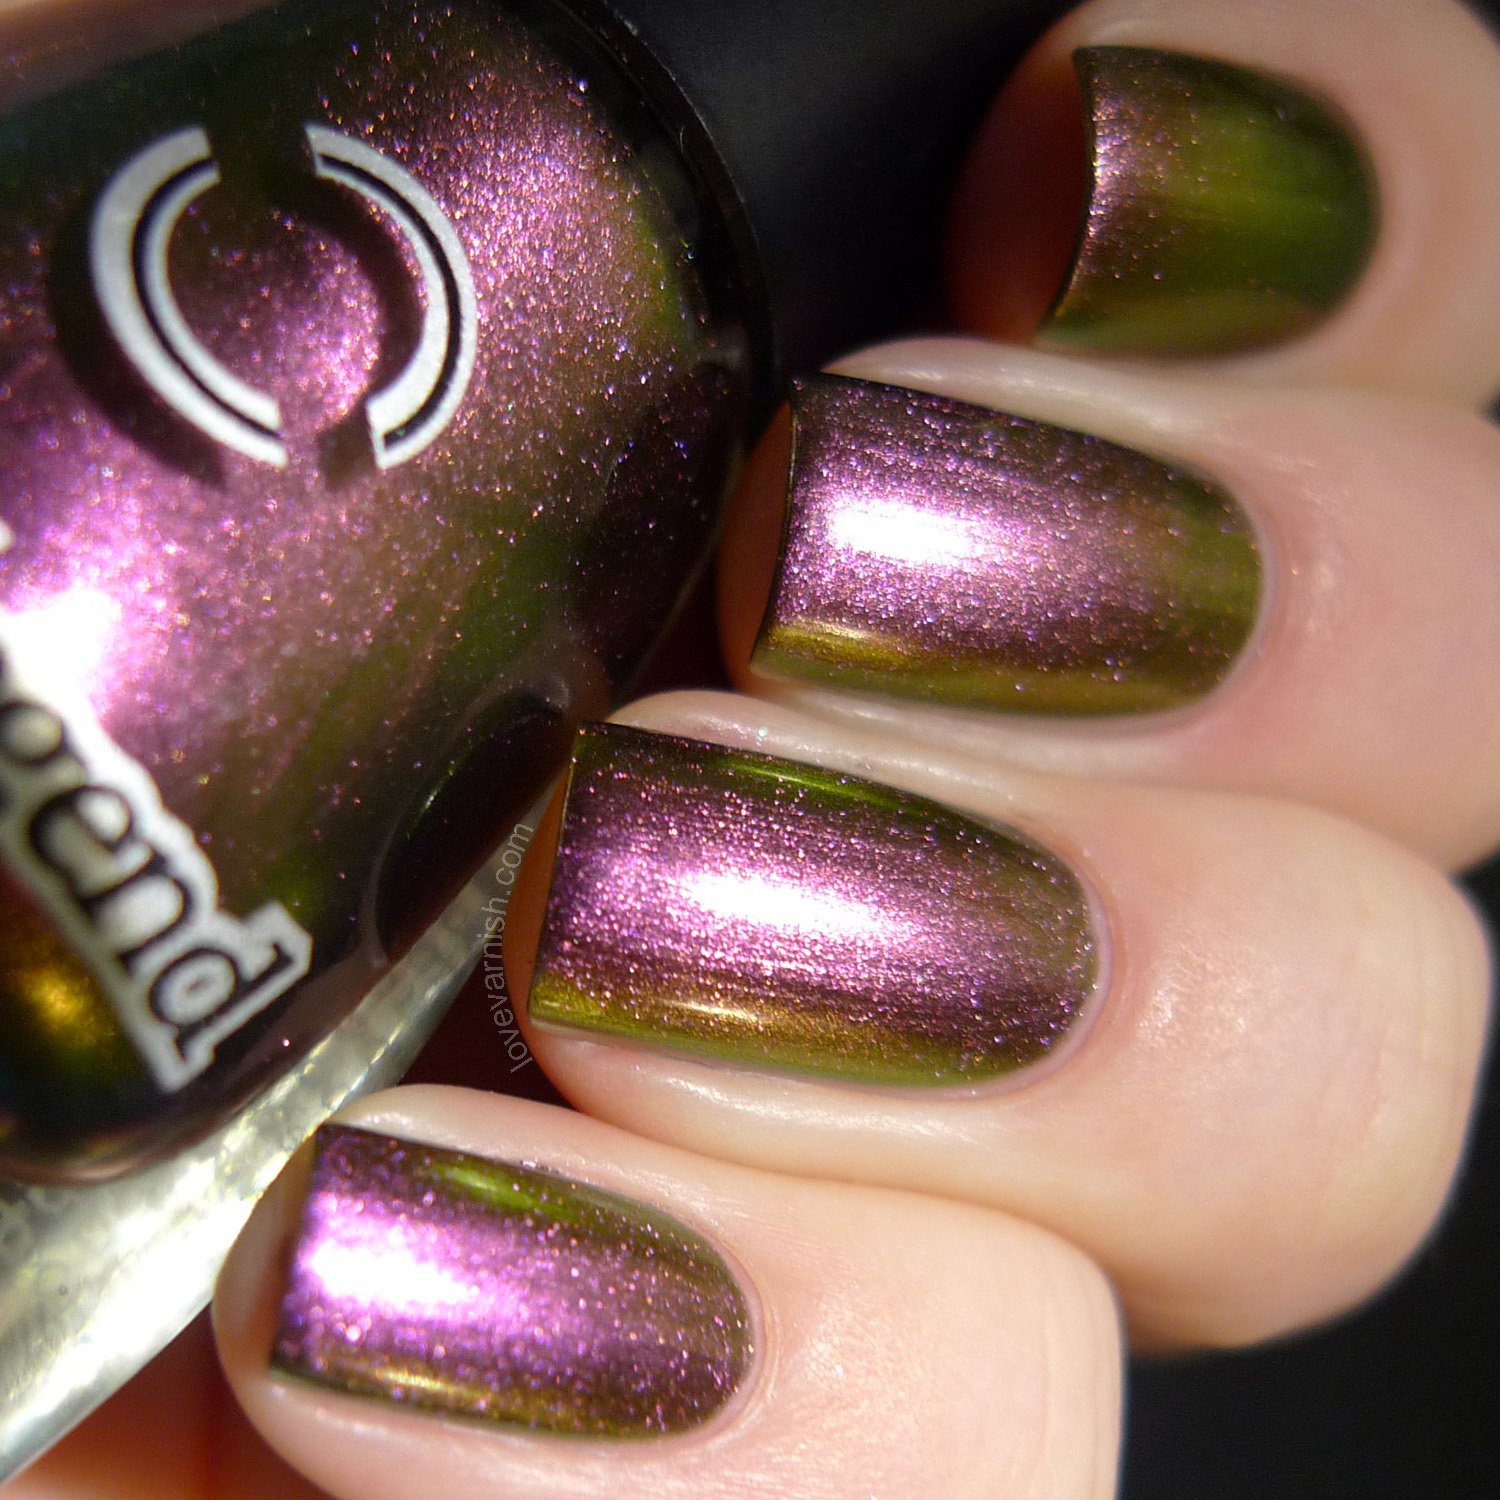 Dance Legend Chameleon Roz multichrome polish